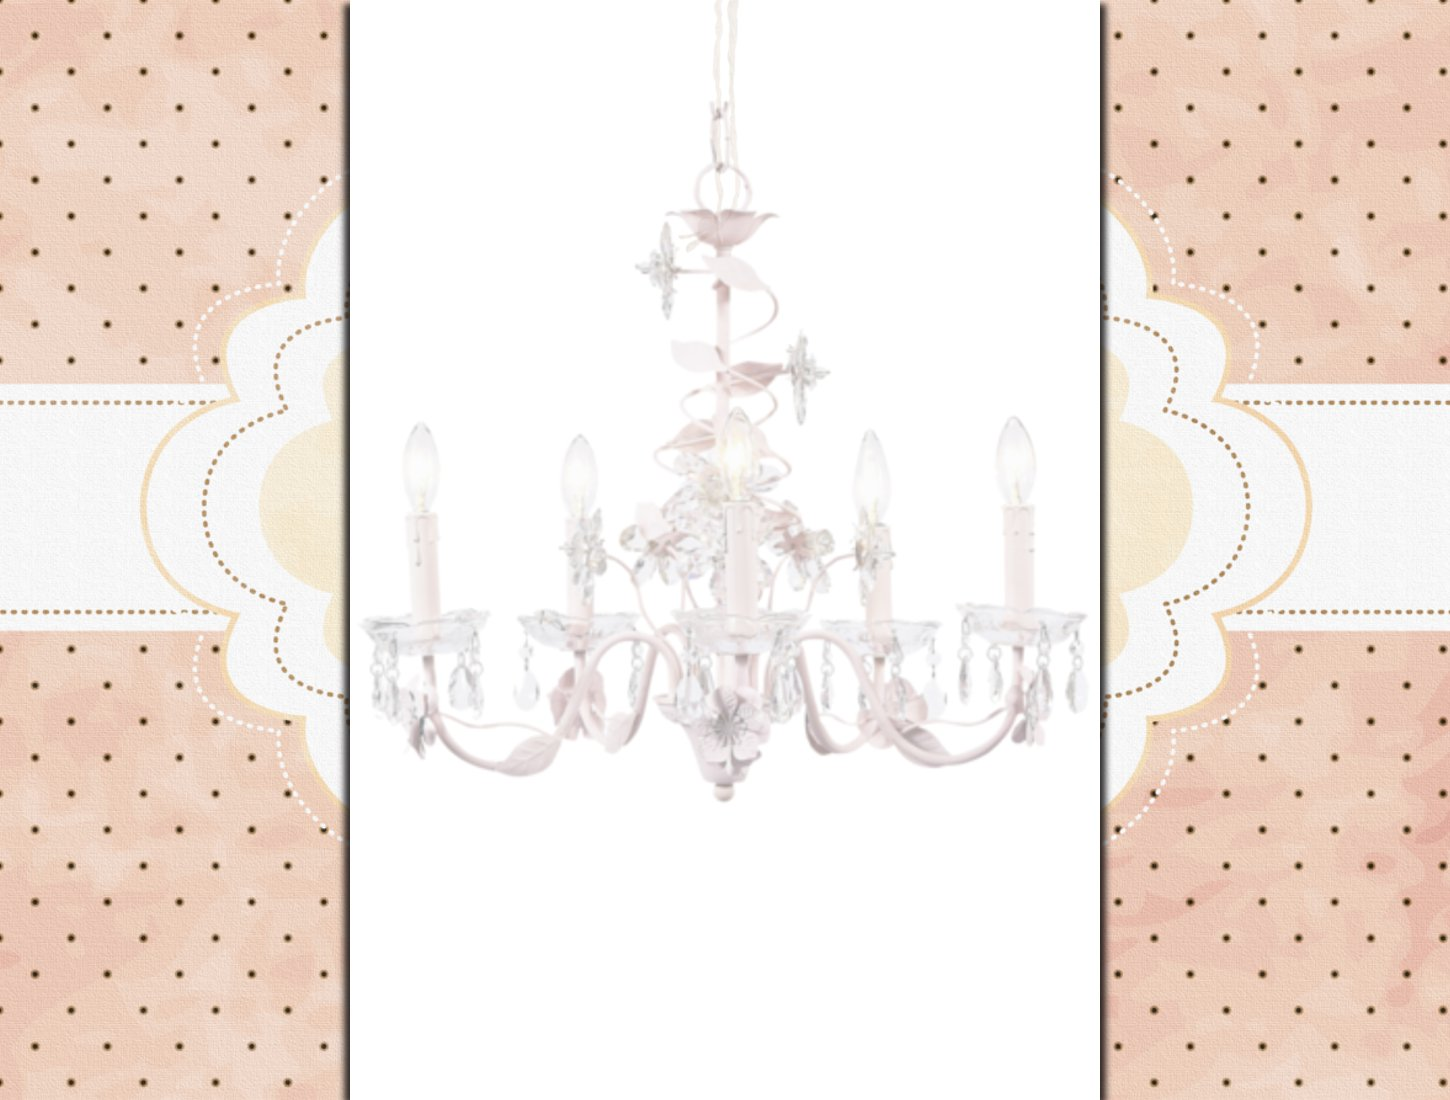 http://1.bp.blogspot.com/-lPYYLlnE7Ow/Tlw1hjC7bqI/AAAAAAAAC44/kWrZYVRqX0U/s1600/Good+Health+and+Bloom%252C+Chandelier.jpg